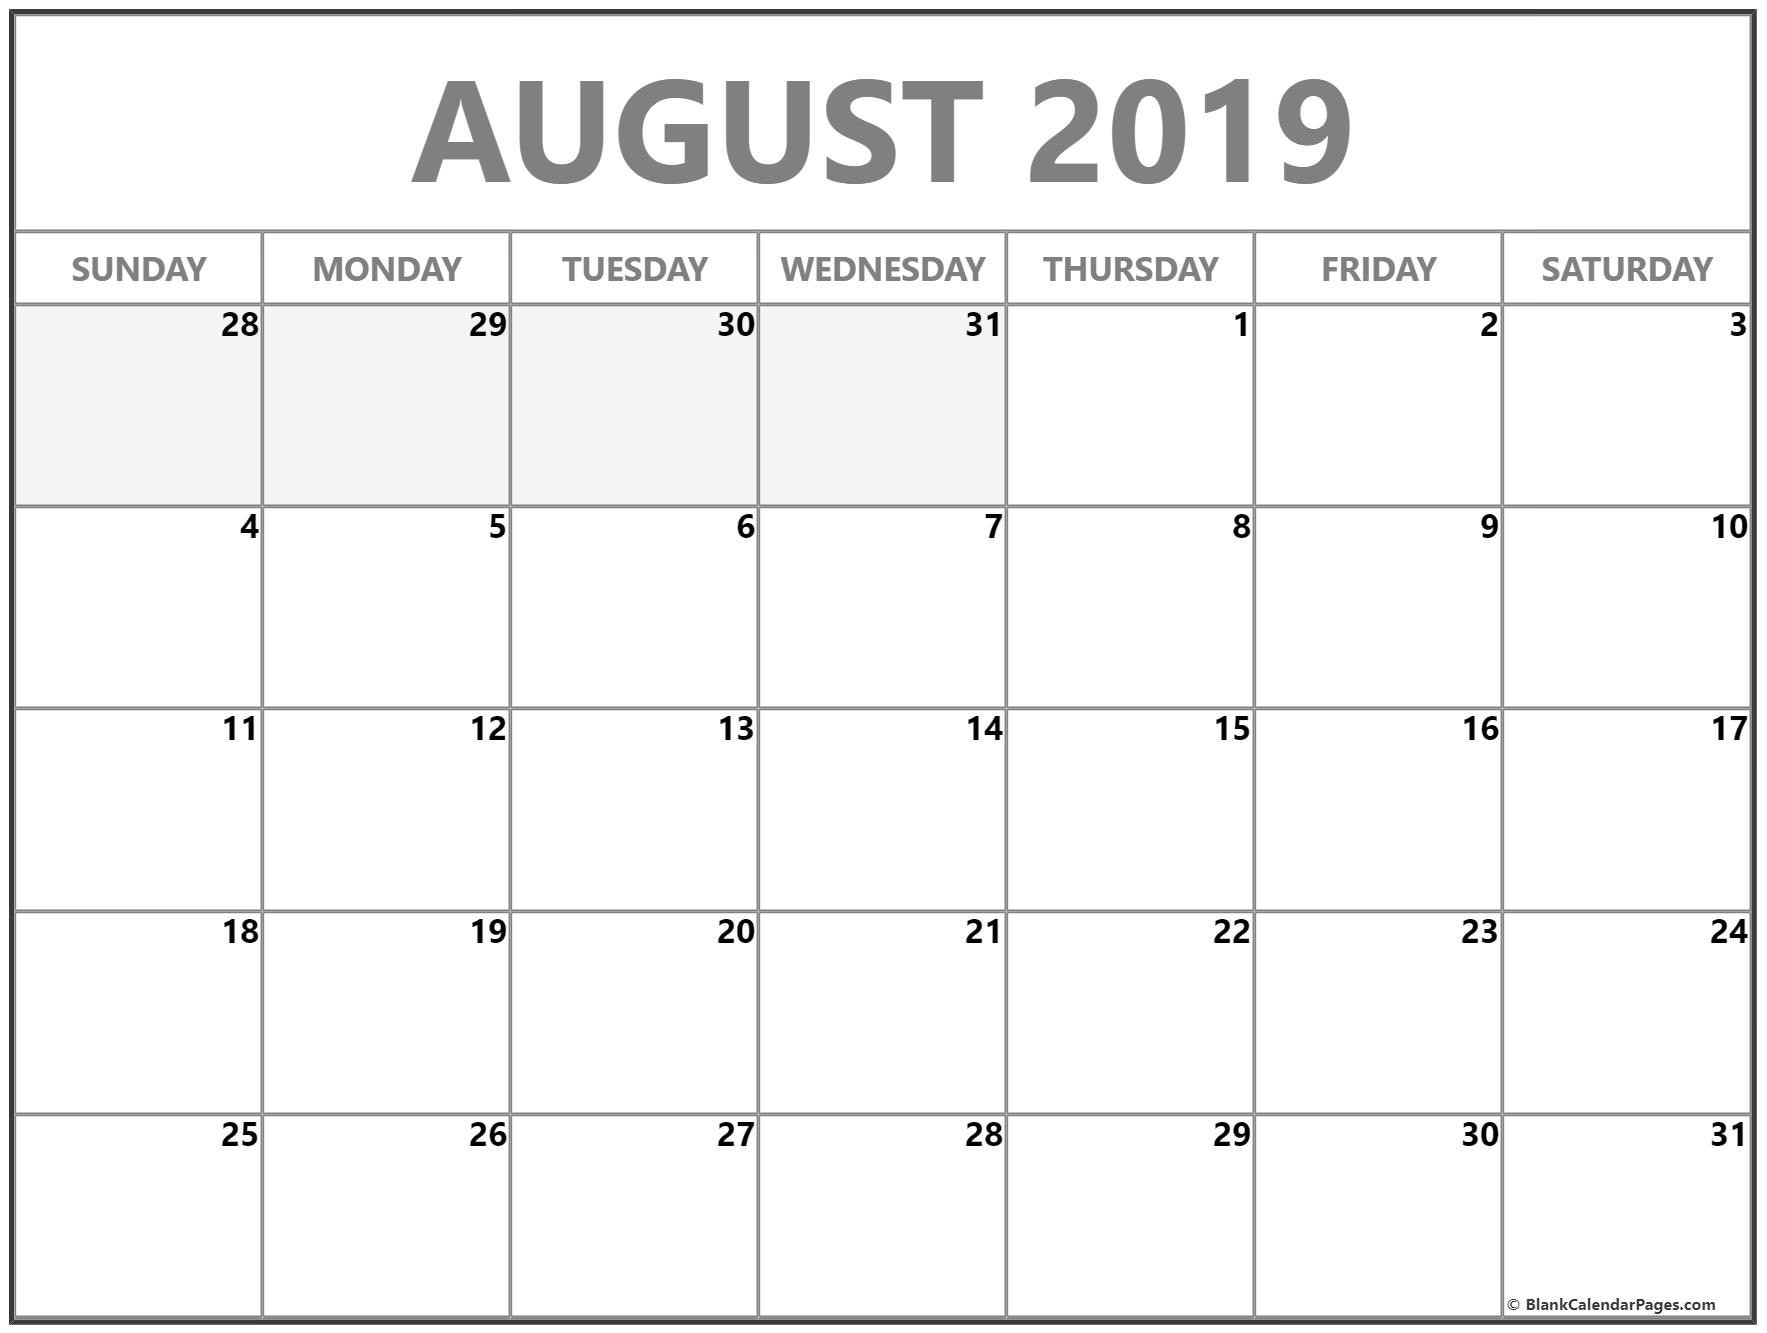 August 2019 Calendar | Free Printable Monthly Calendars-Printable Monthly Calander Sheets